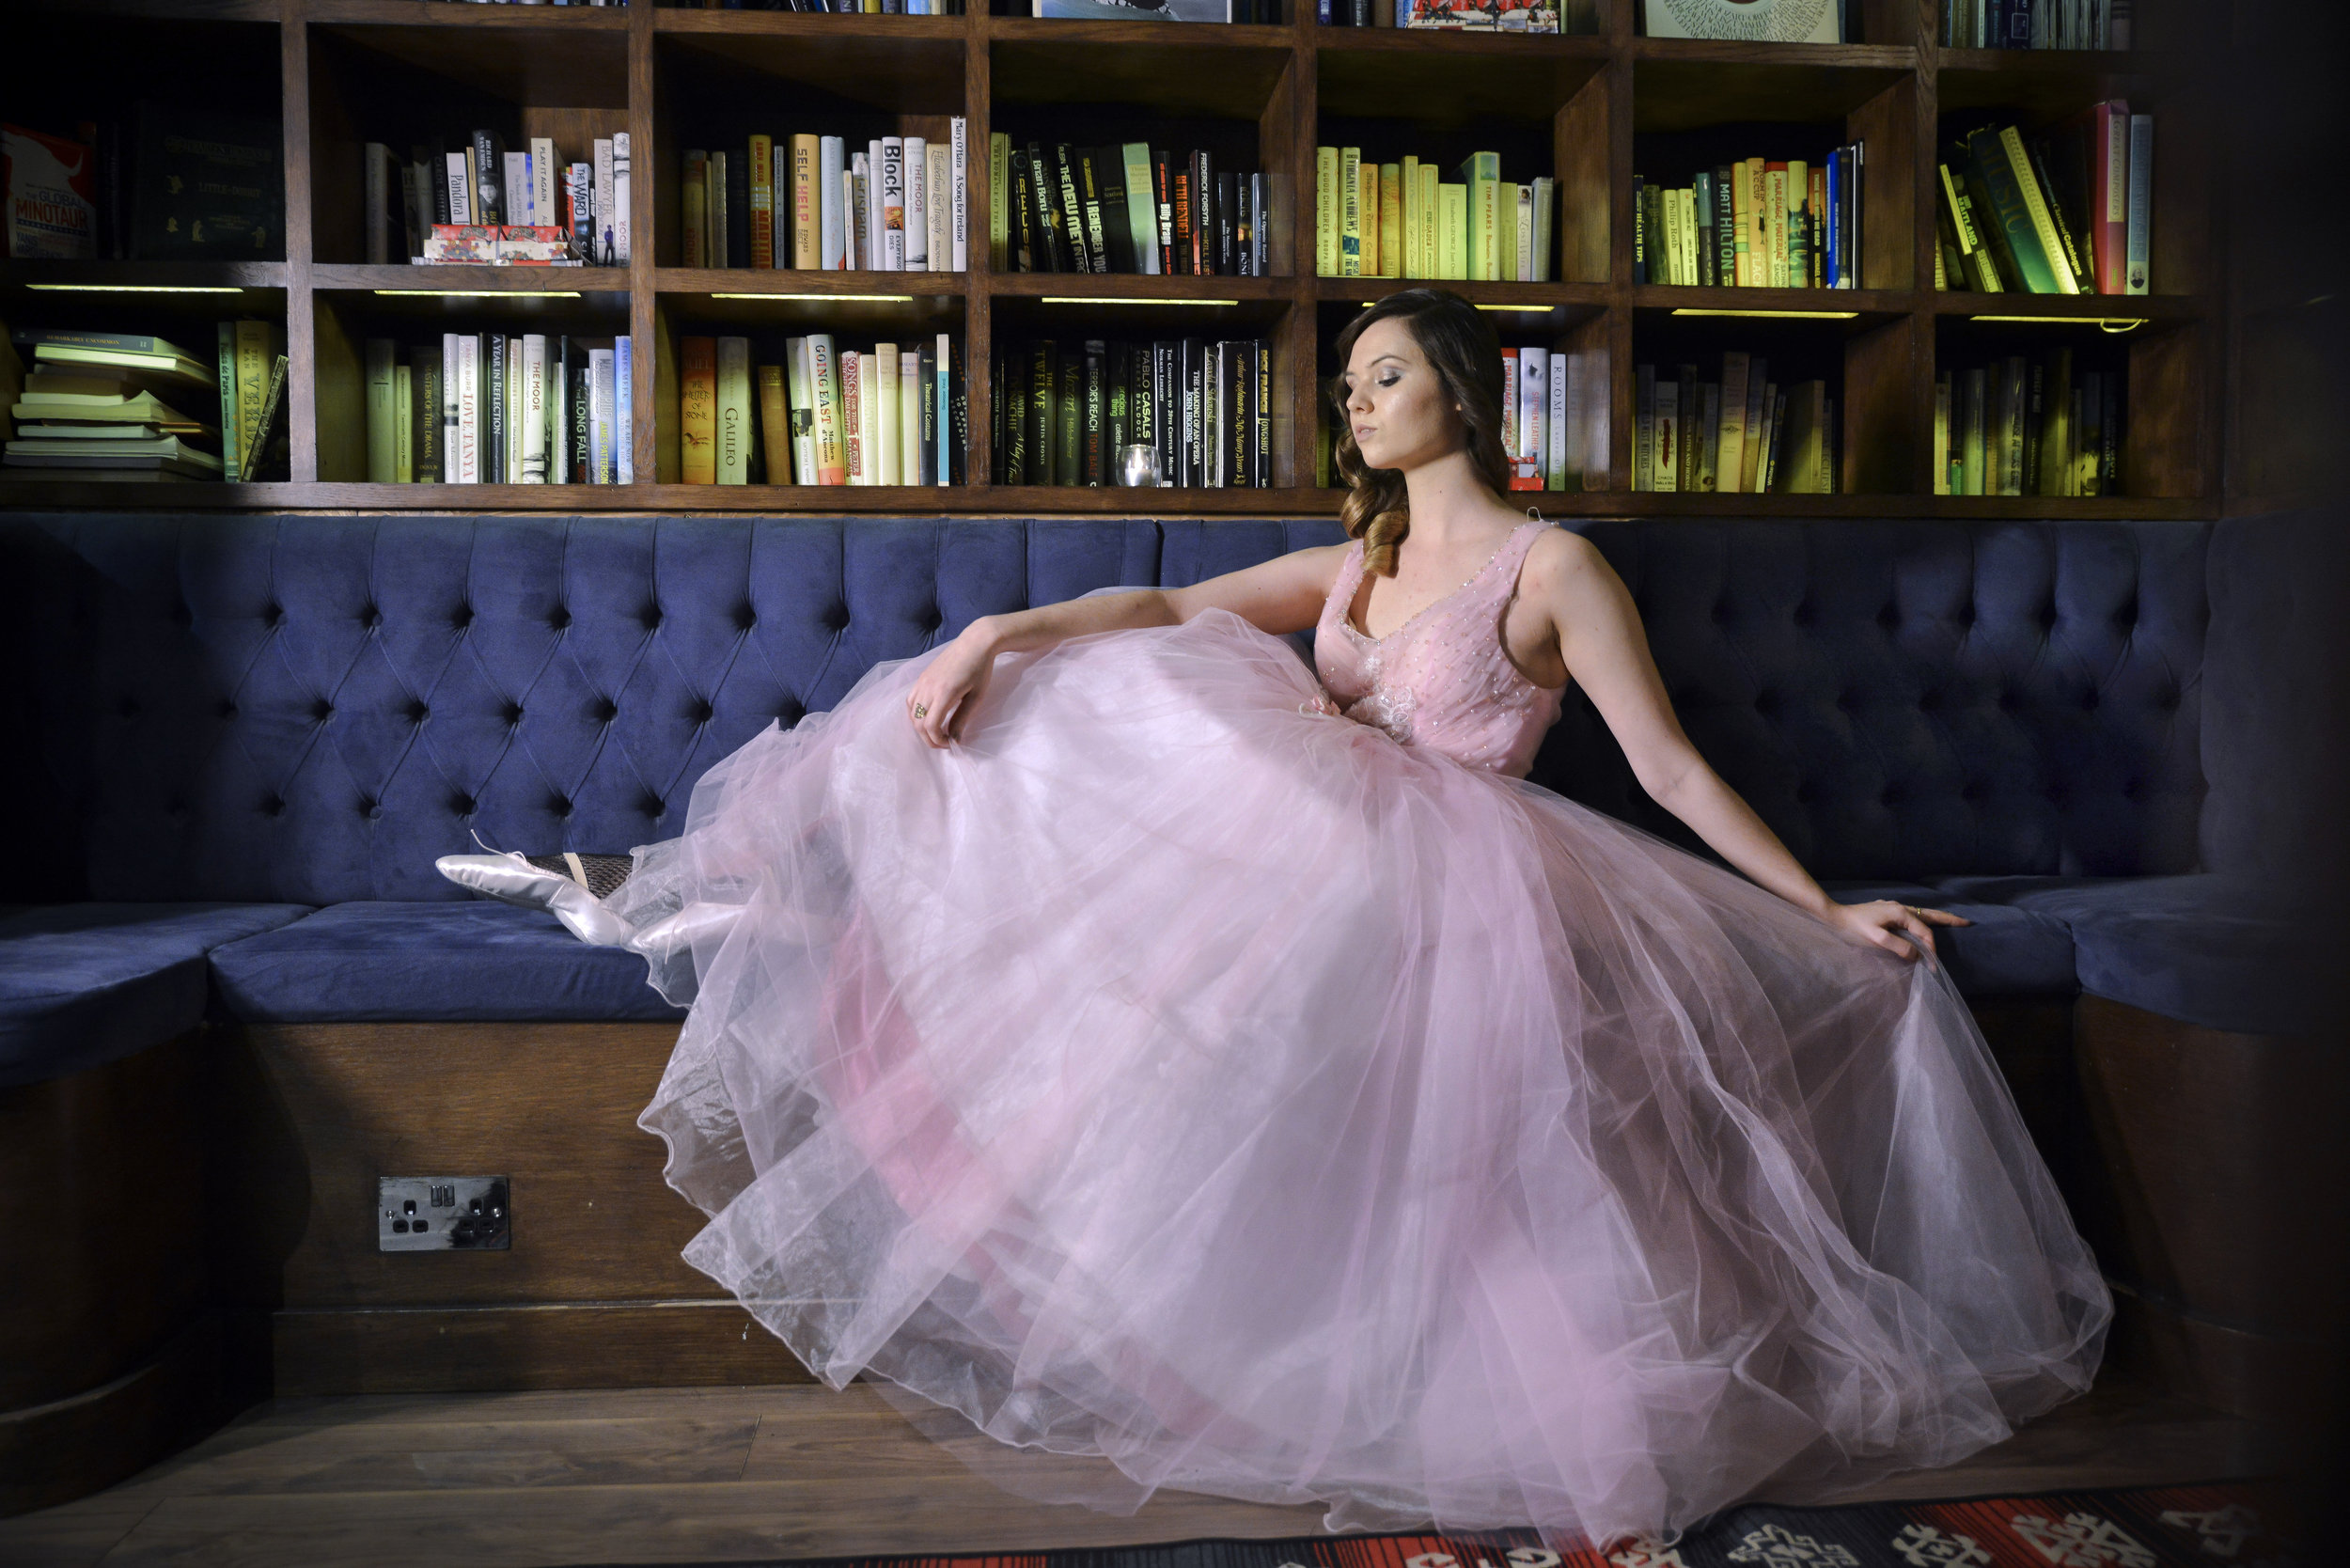 Opera singer Katie Morel-Orchard photographed by Stephen Brockerton at  The Library  private members' club